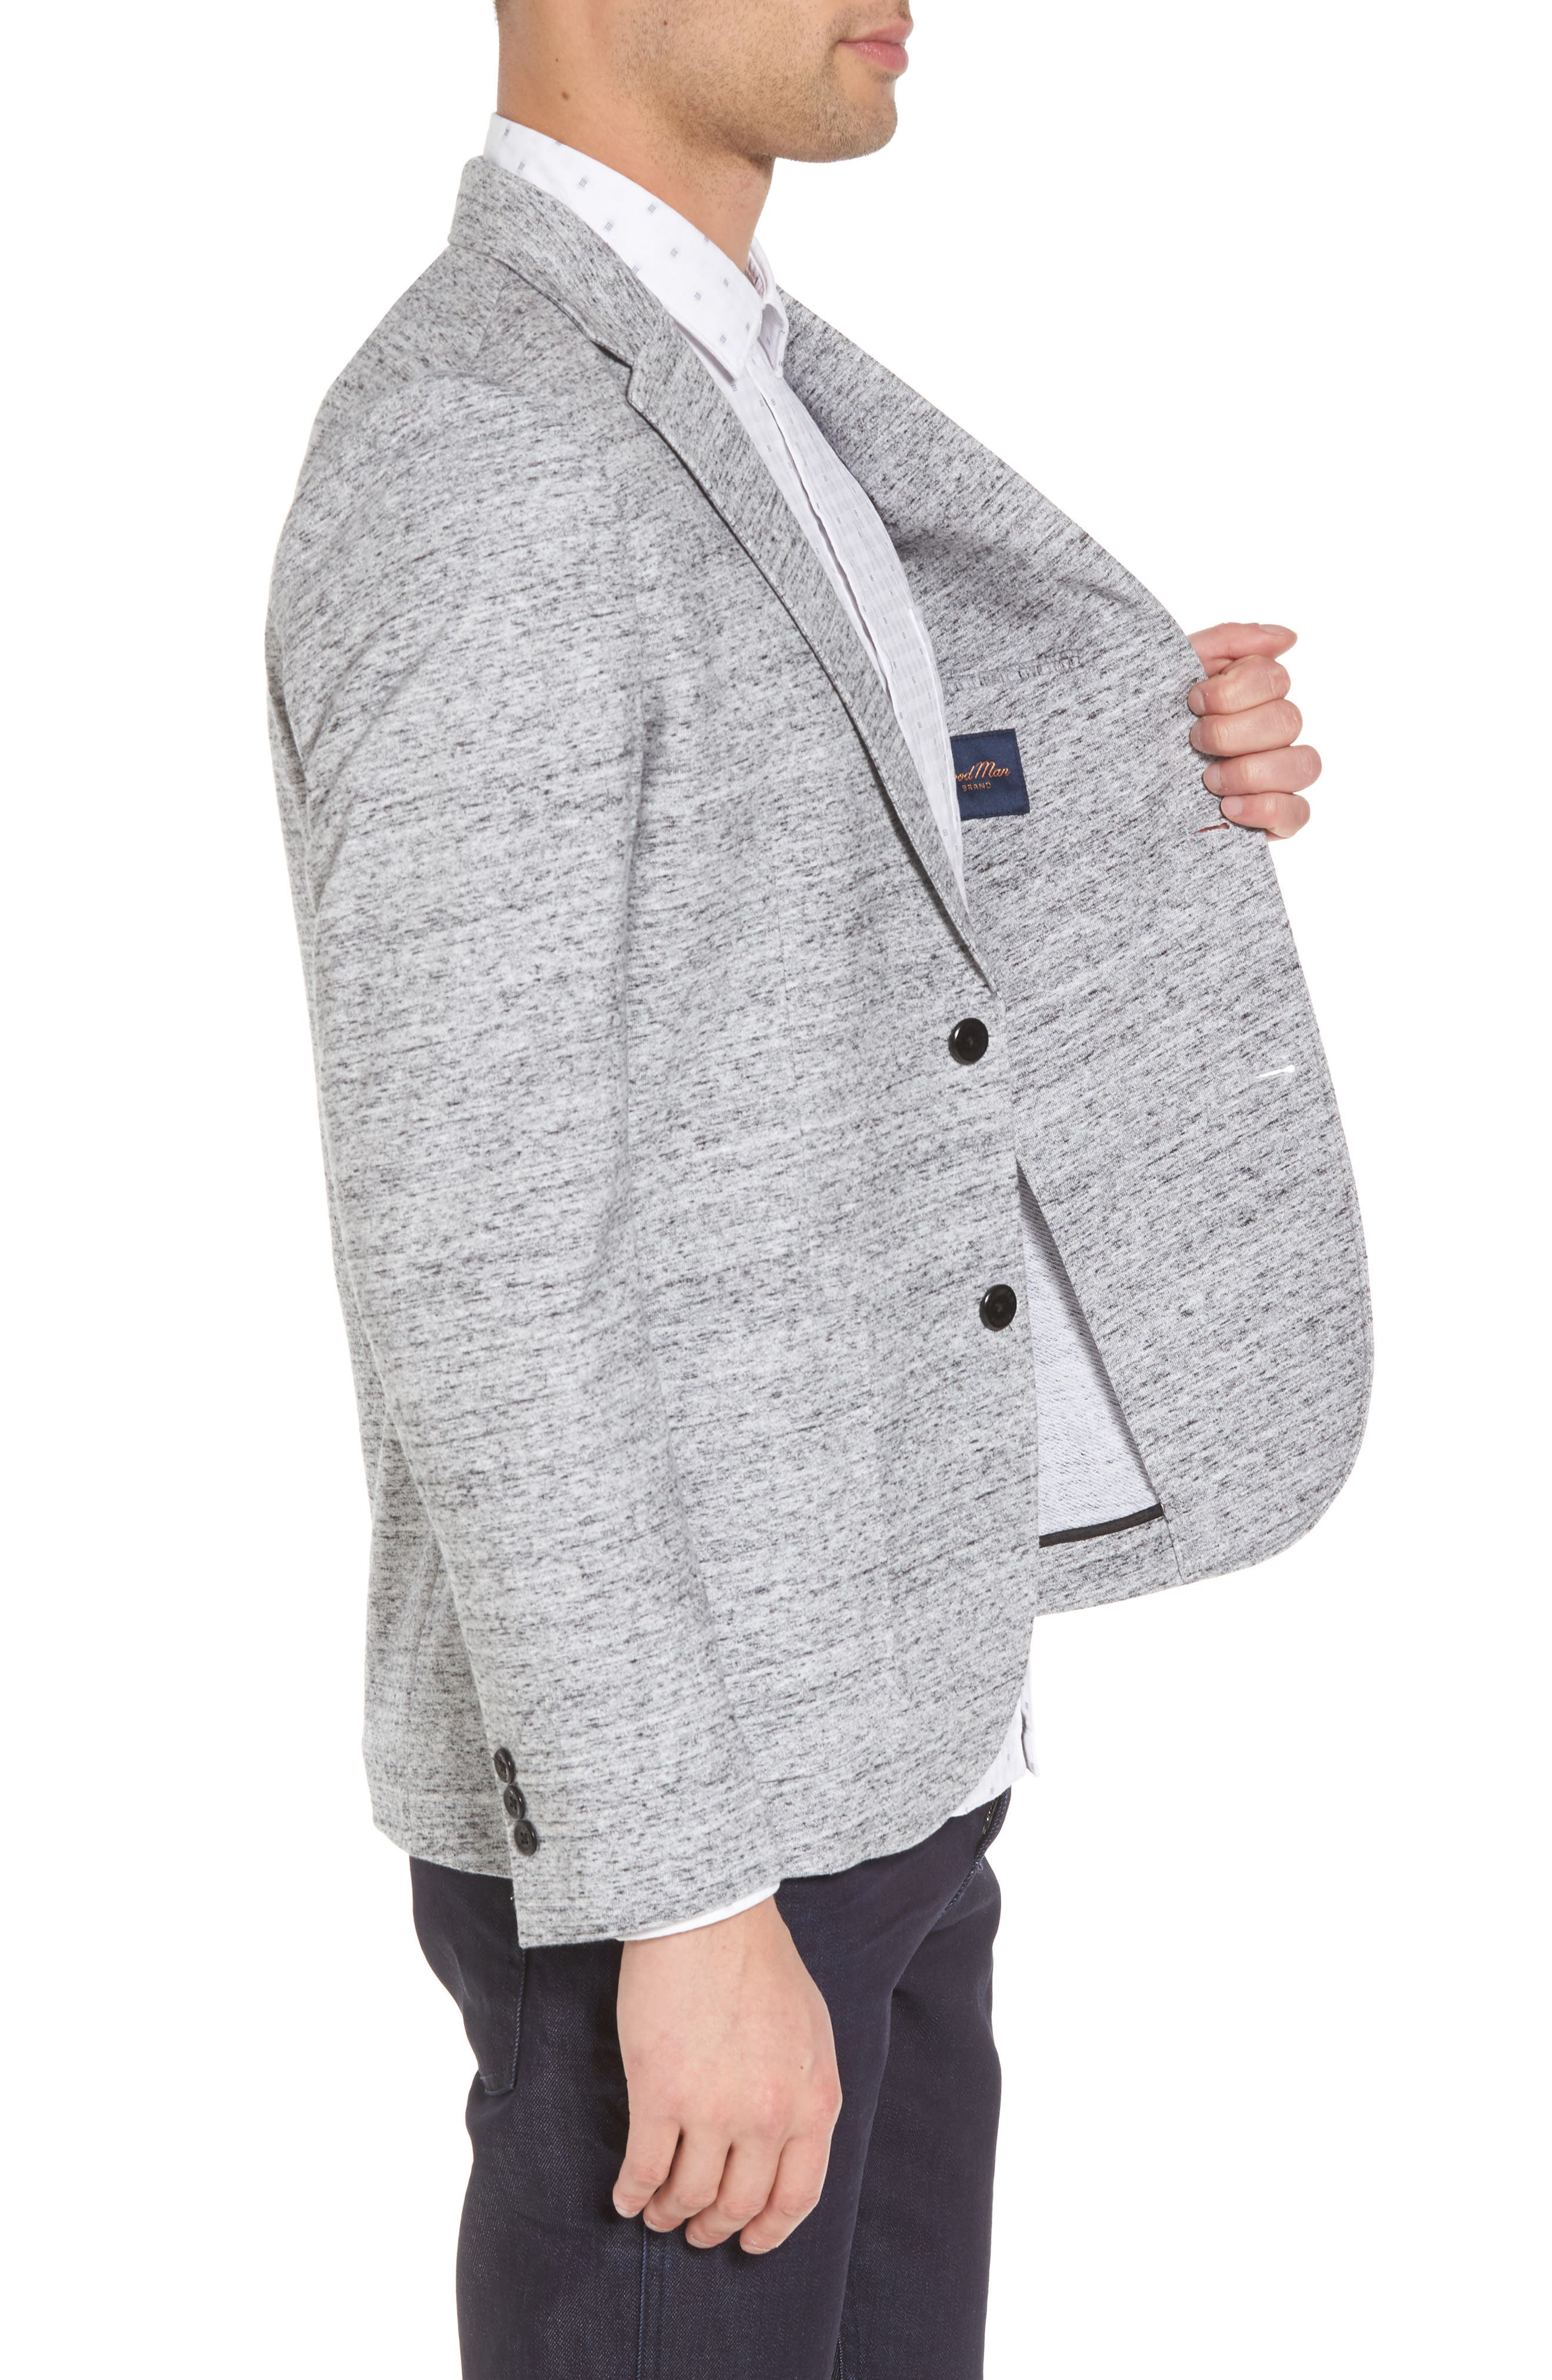 Soft Cotton Unconstructed Blazer,                             Alternate thumbnail 3, color,                             Grey Heather / White